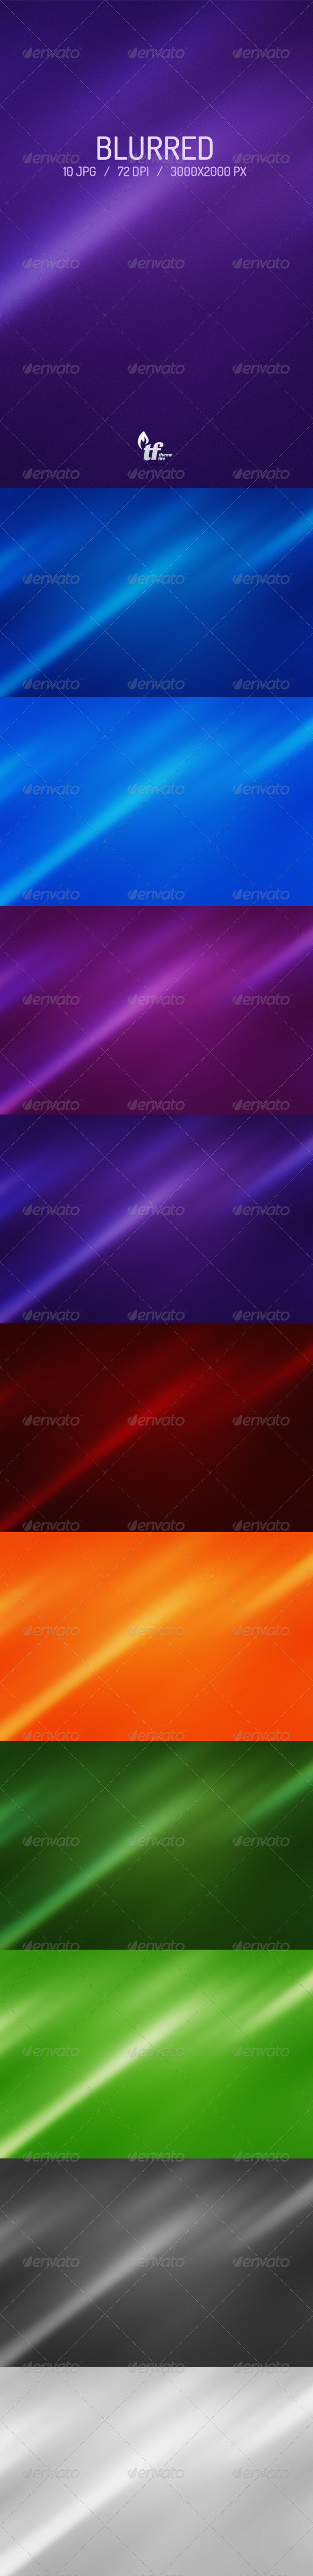 GraphicRiver 10 Blurred Backgrounds 6731478